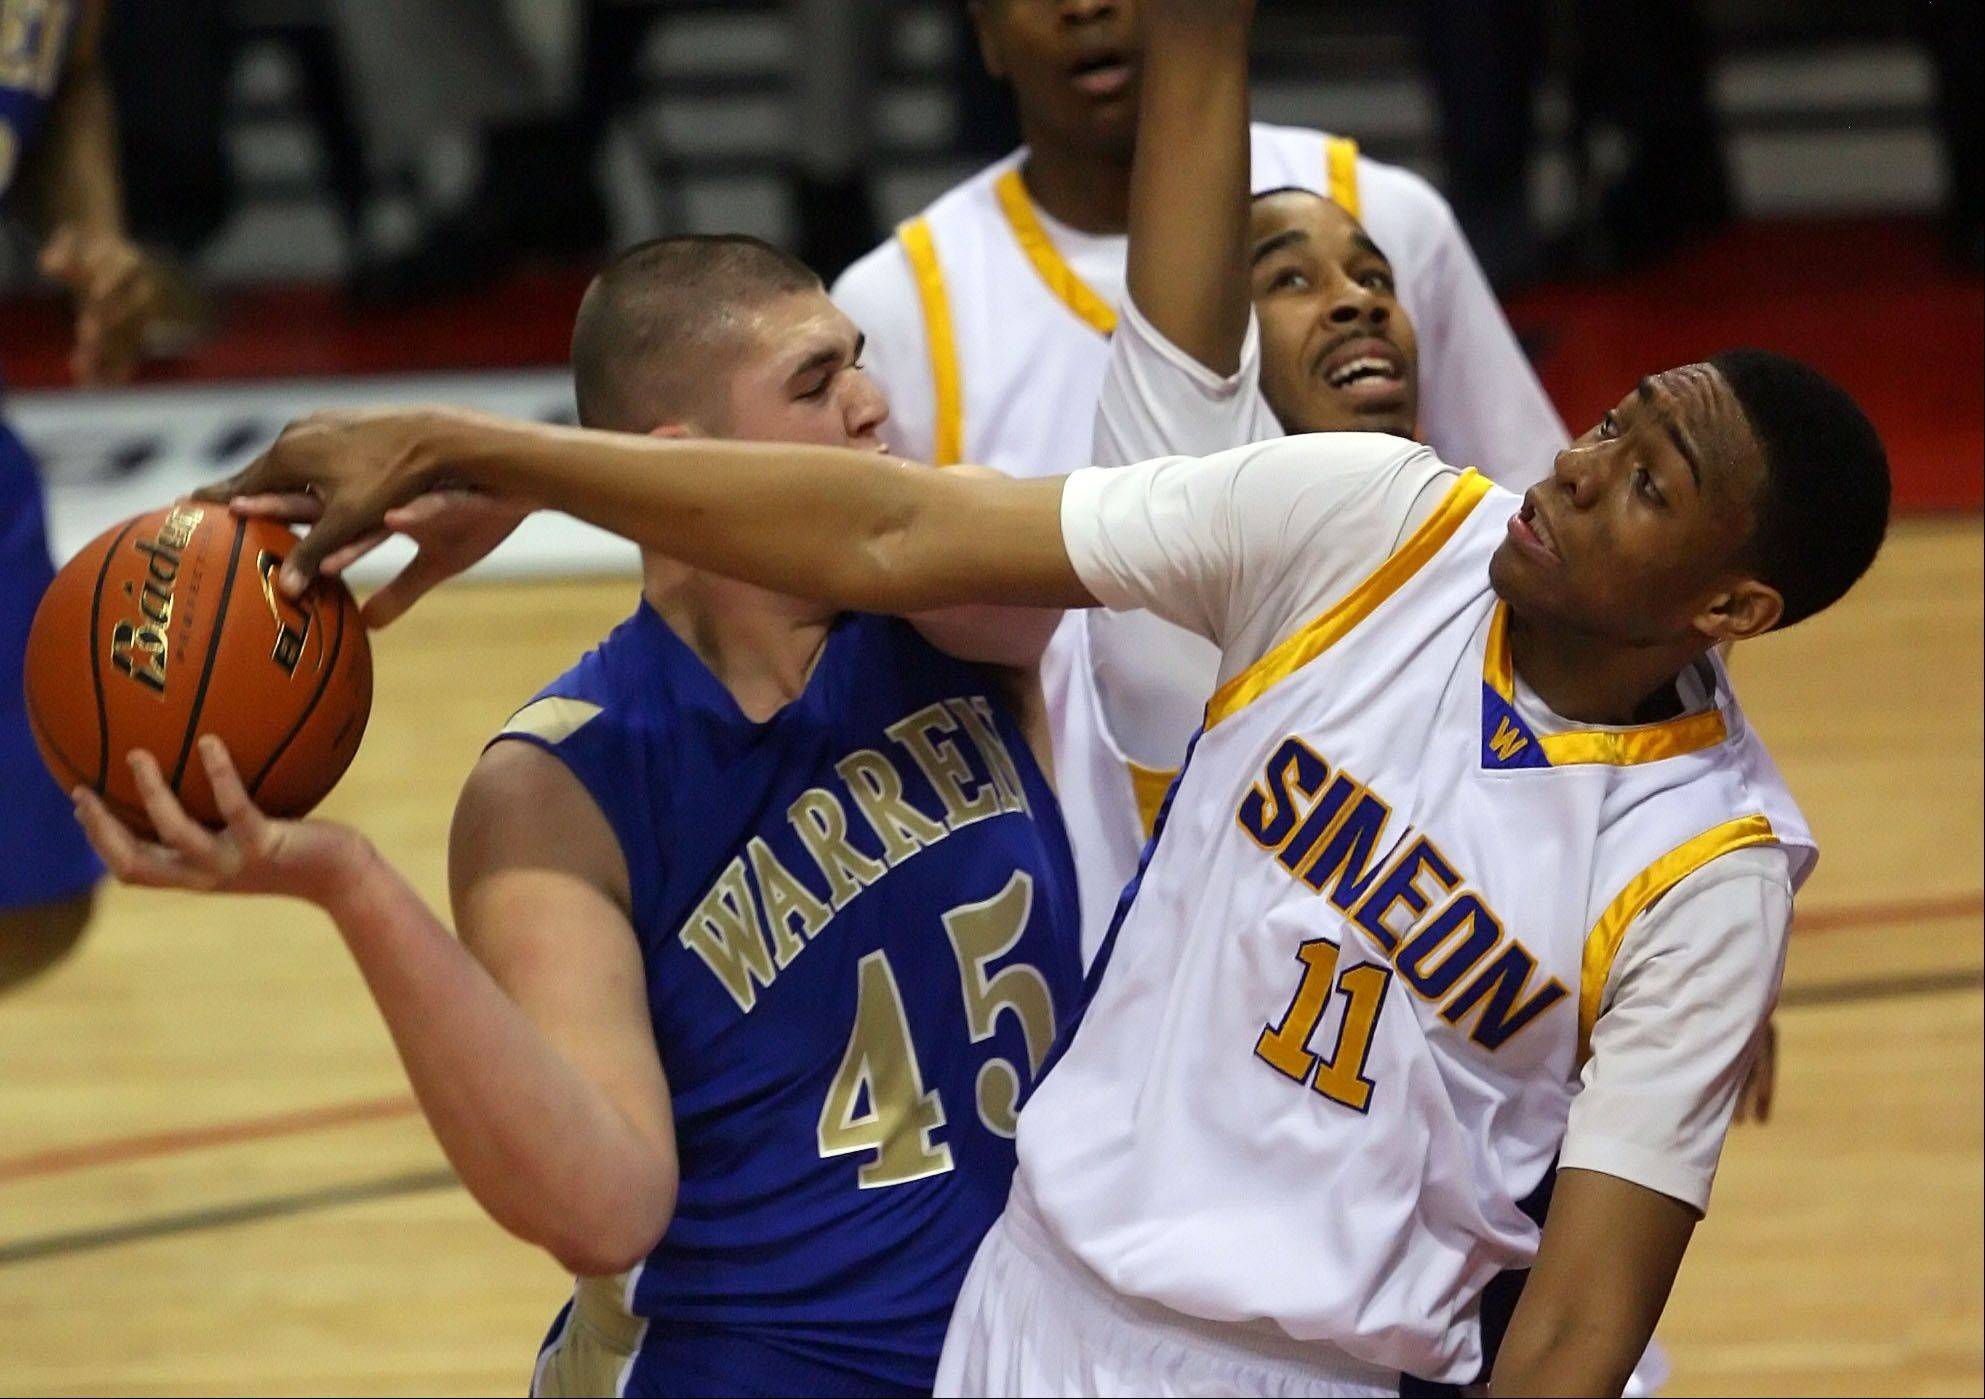 Steve Lundy/slundy@dailyherald.comSimeon and Jabari Parker, at right defending against Warren's Nathan Boothe in last season's Class 4A state title game, are going after a fourth straight state championship in Peoria this weekend.